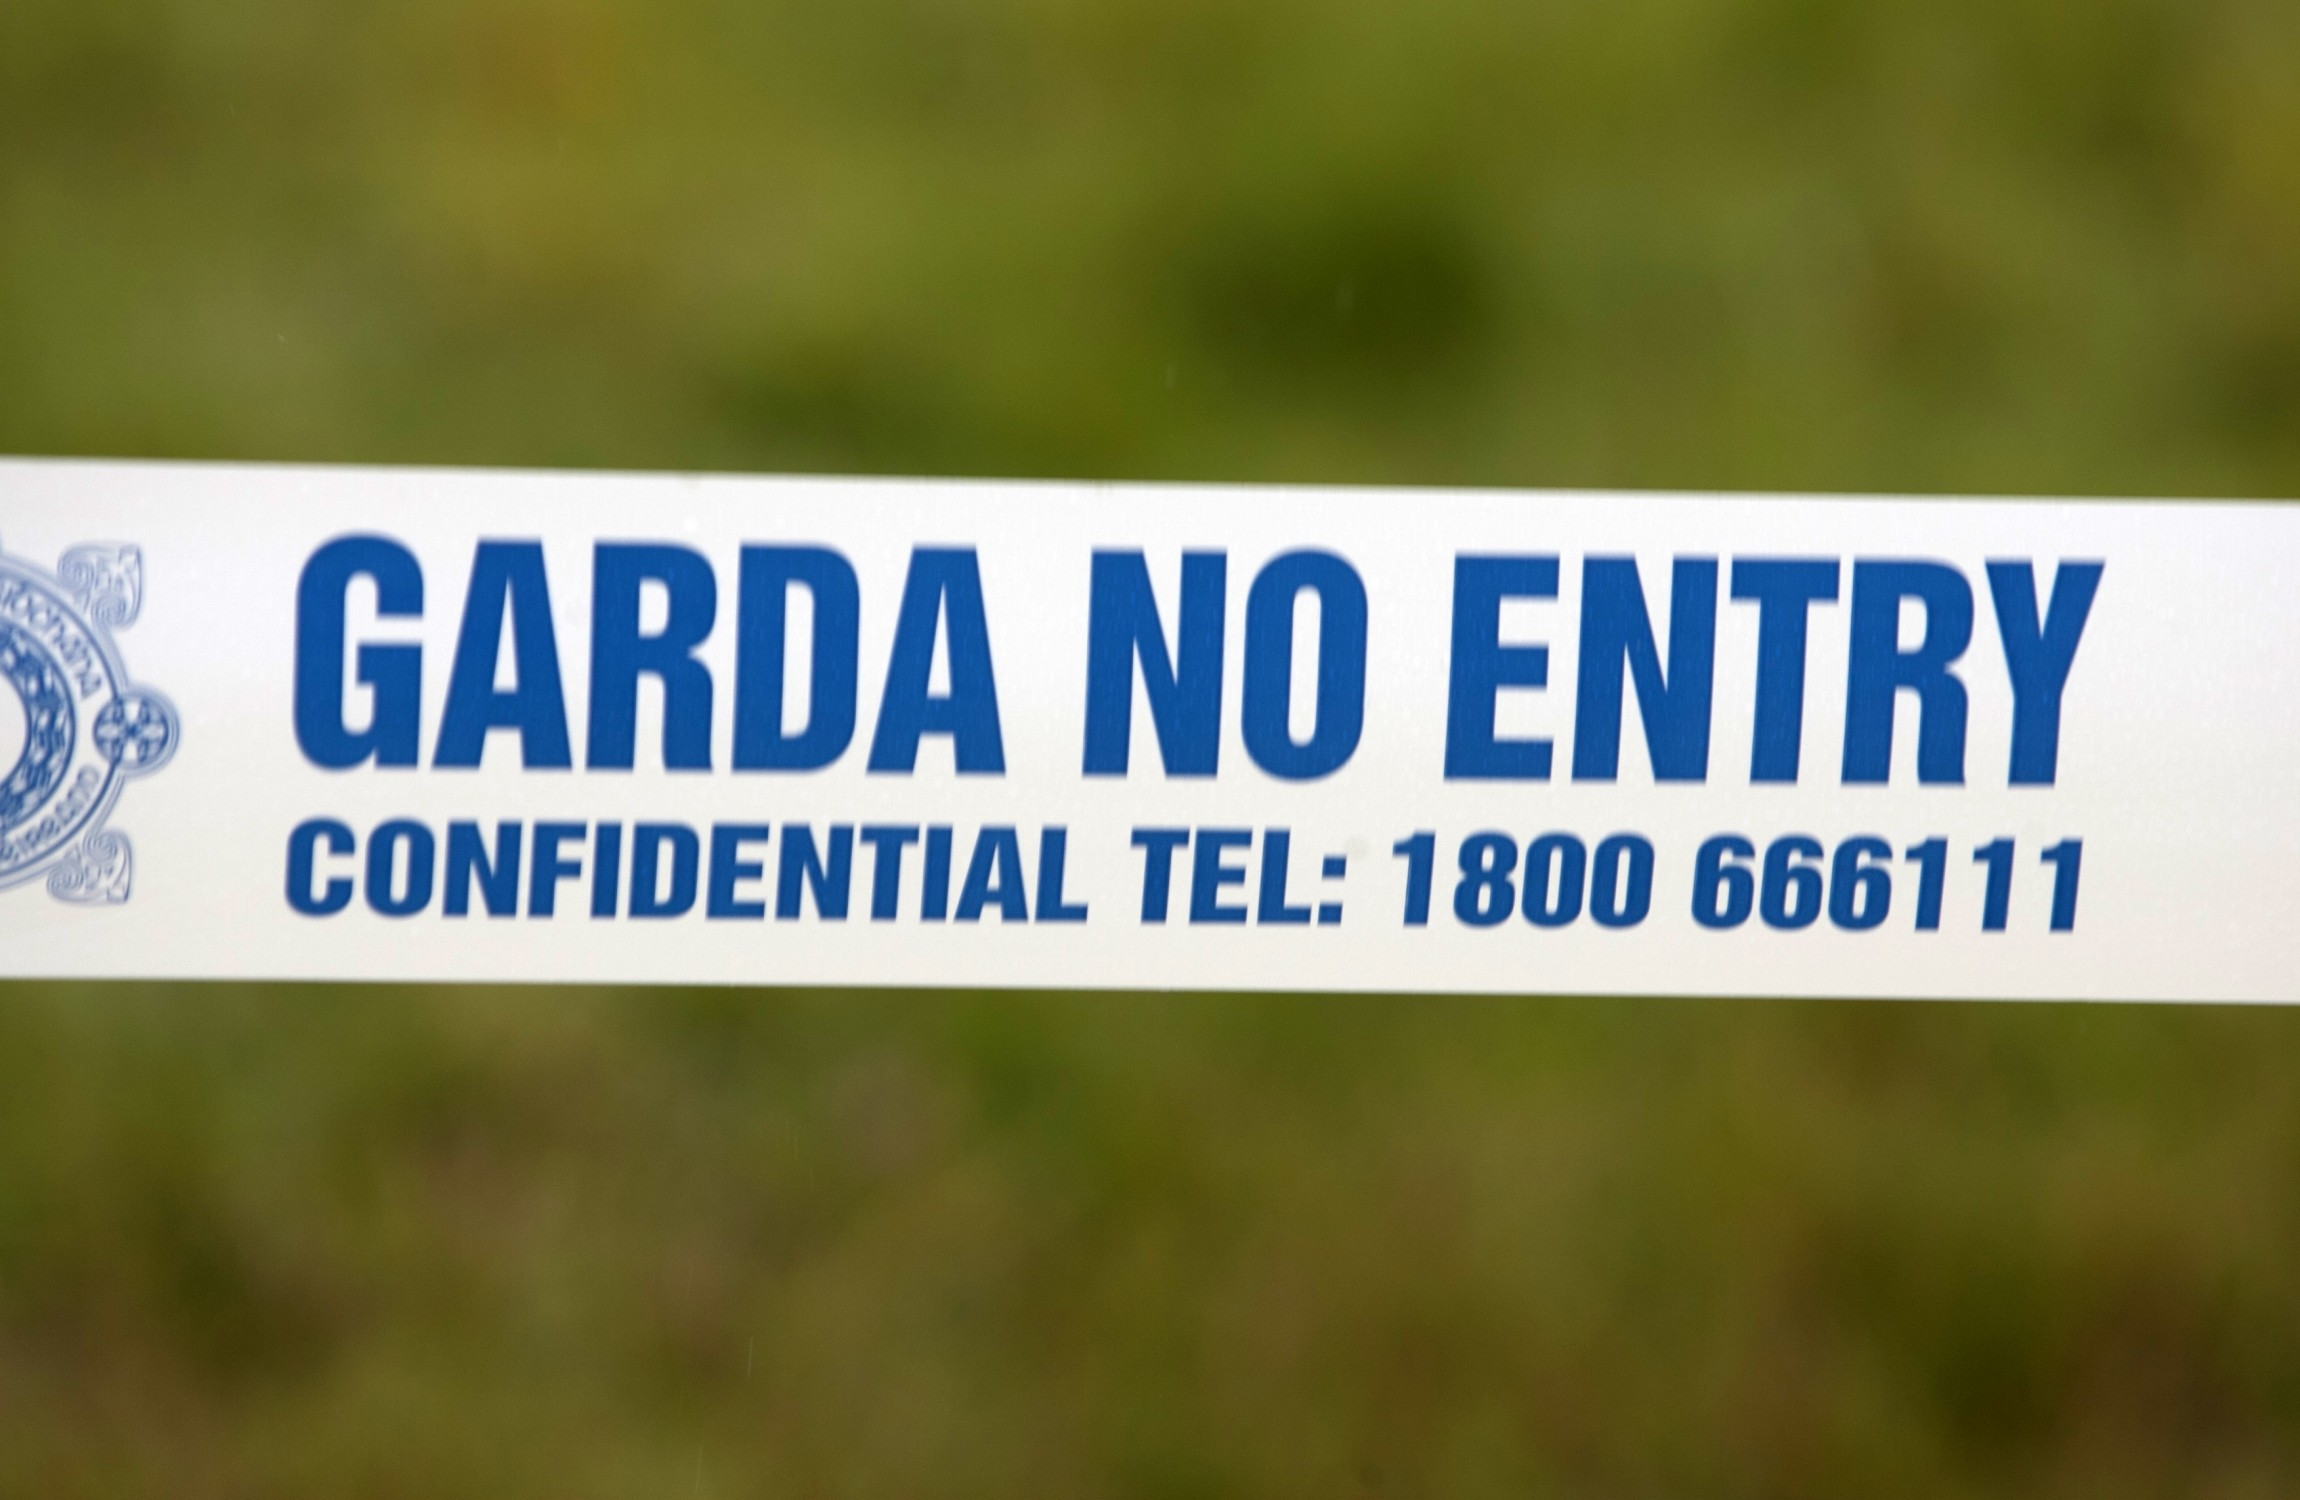 Post mortems due as bodies of two men found off Donegal coast